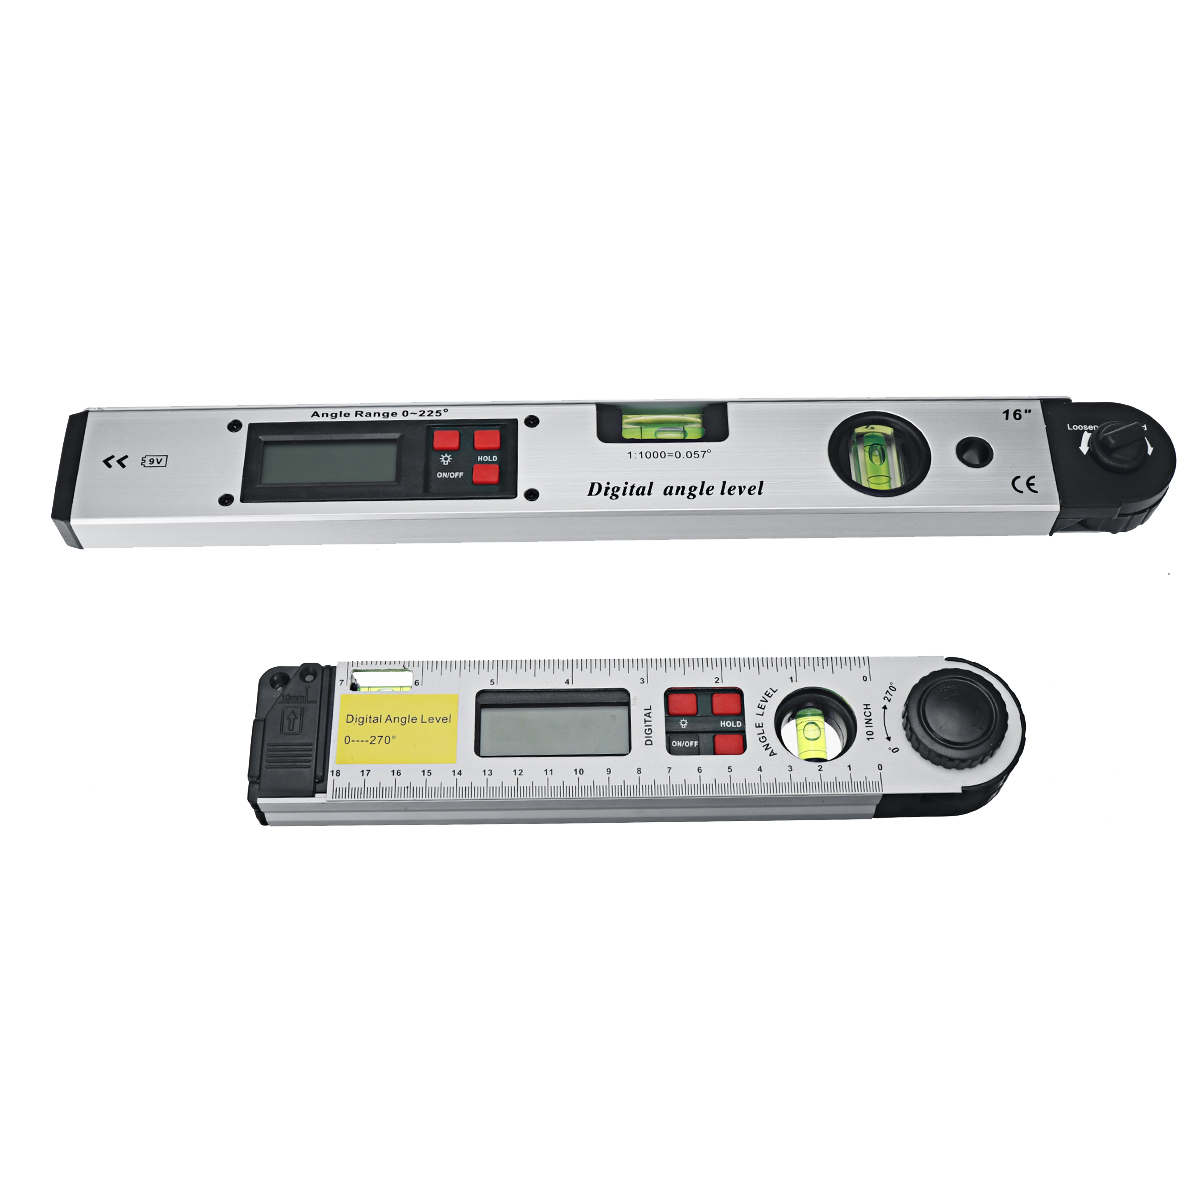 425cc68b 5573 419d 9d5e 25790cea2523 250/400mm Digital Angle Level Meter LCD Display 0-225 Degree for Measuring Roof Angles Fitting Up Windows or Doors Aligning Wood Forms